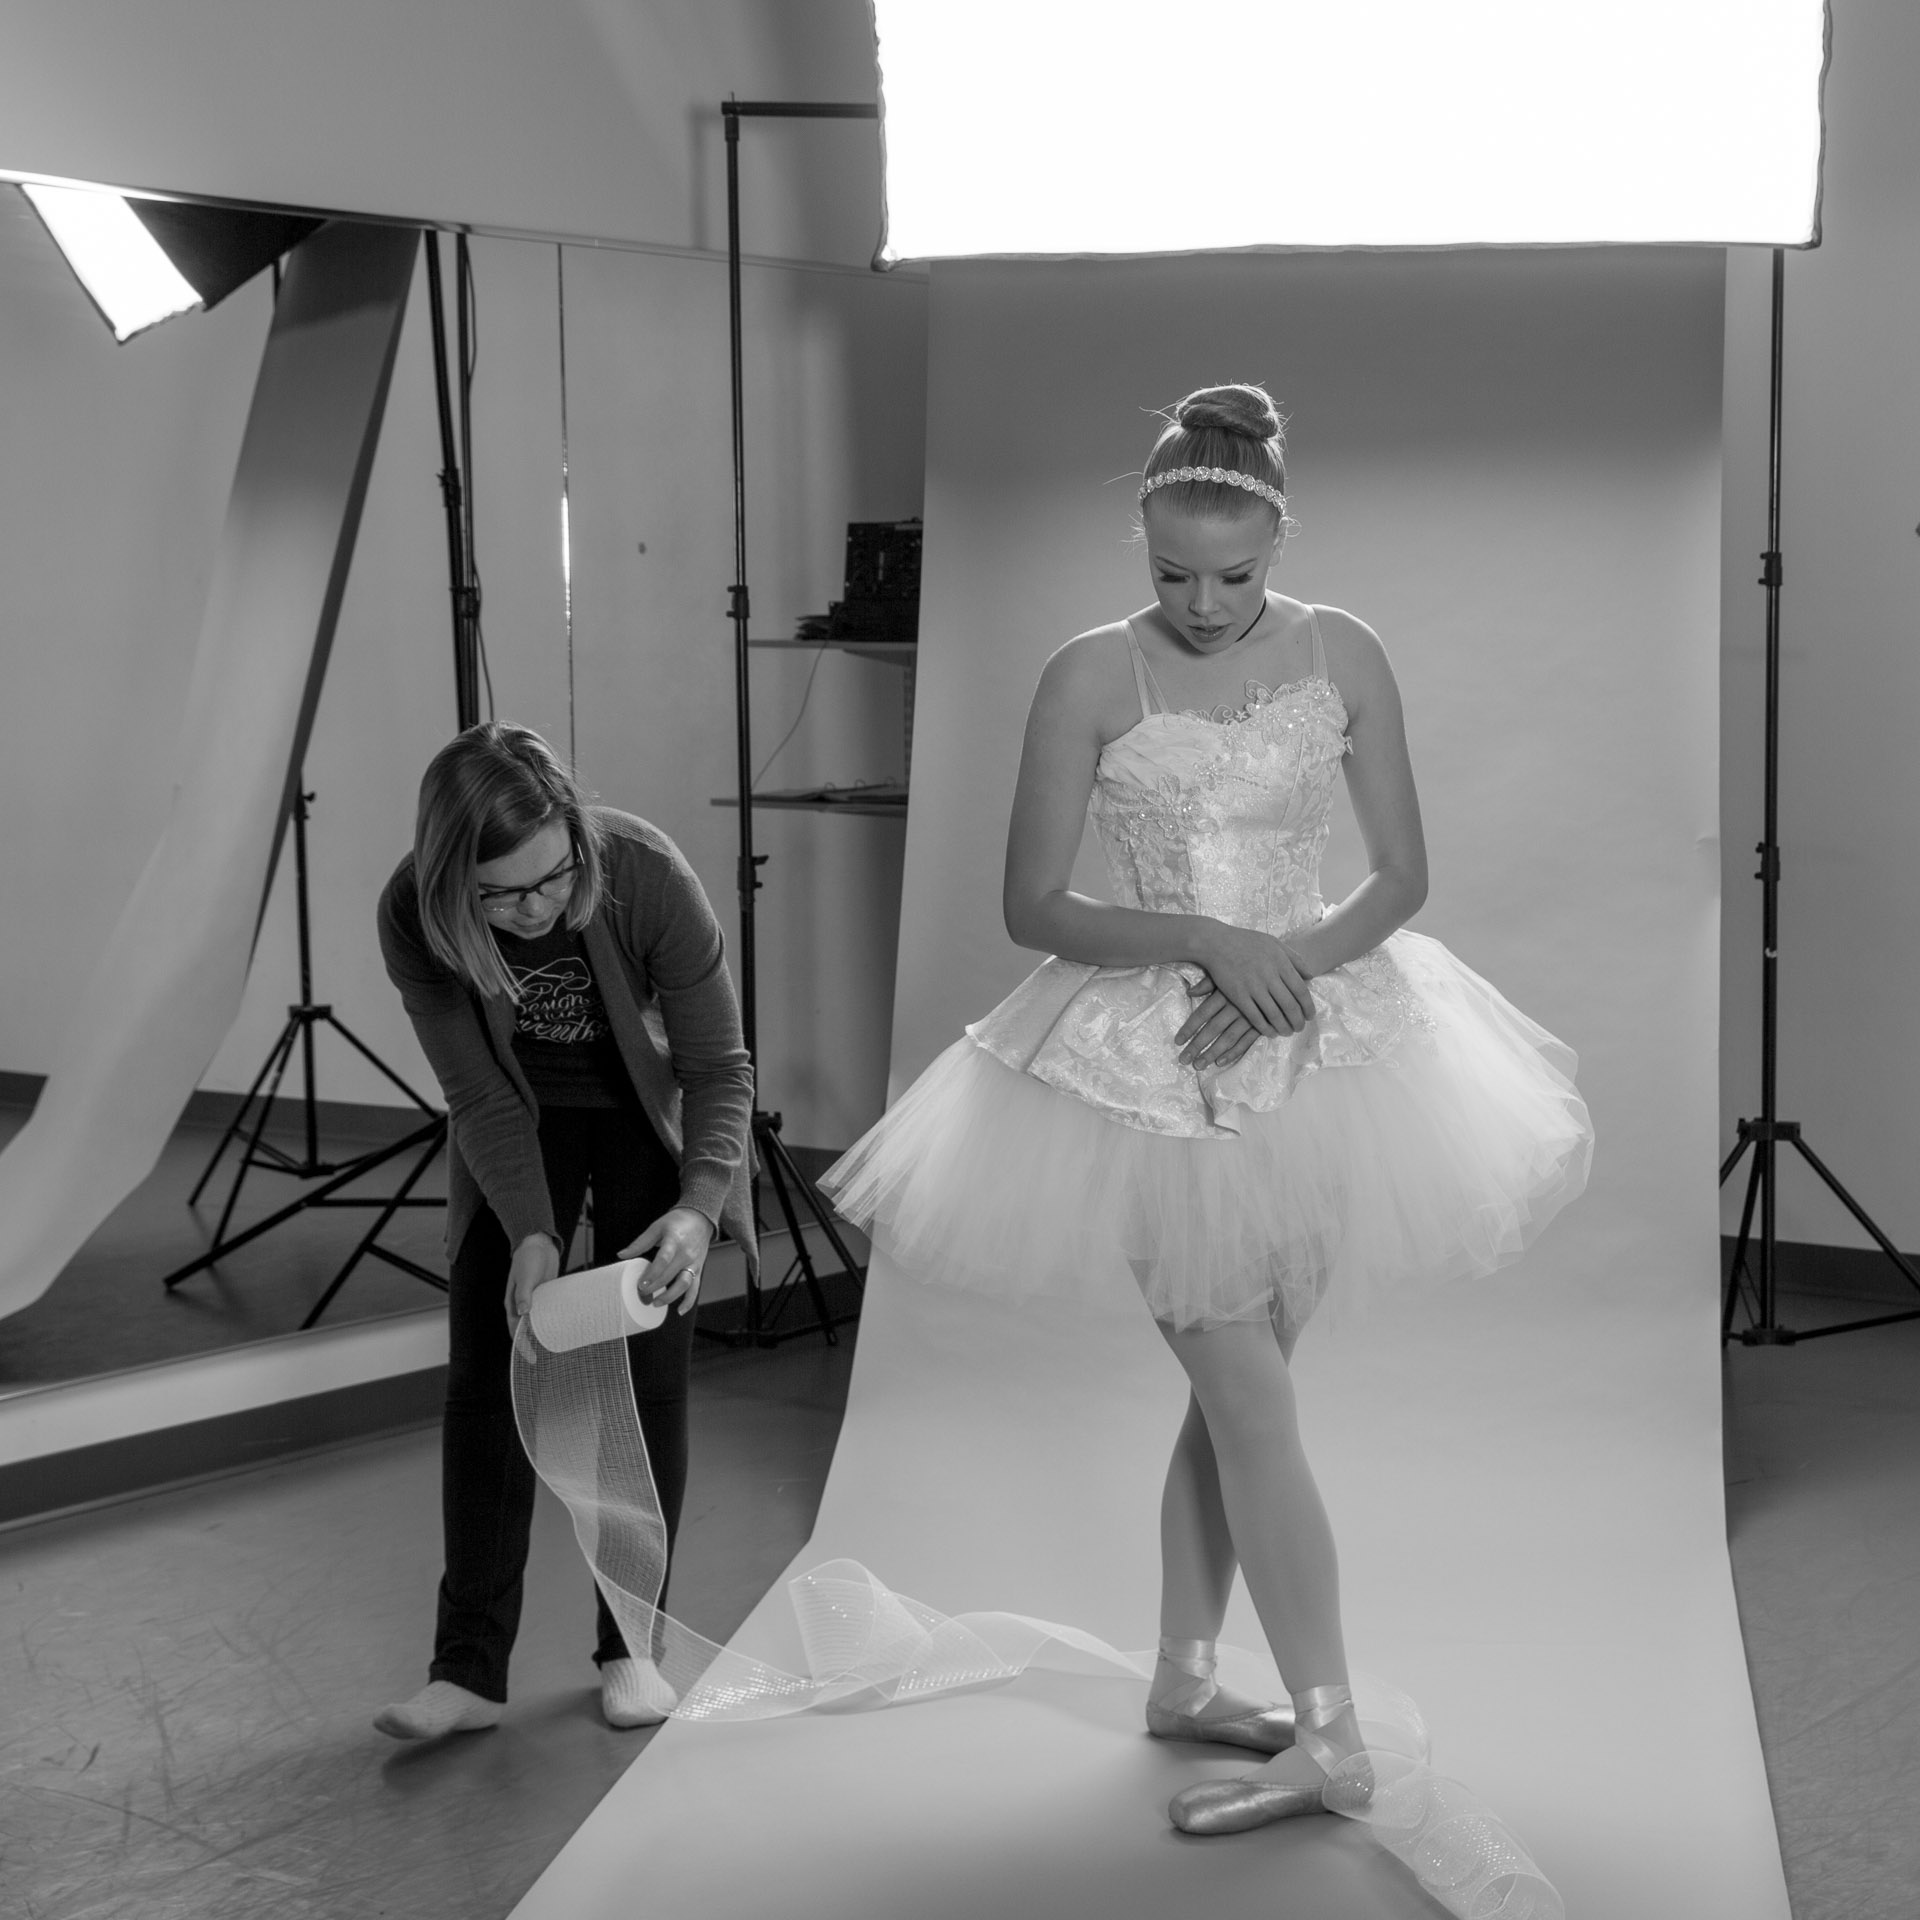 Woman draping tulle around the feet of ballerina dressed in Cinderella tutu in front of photo backdrop